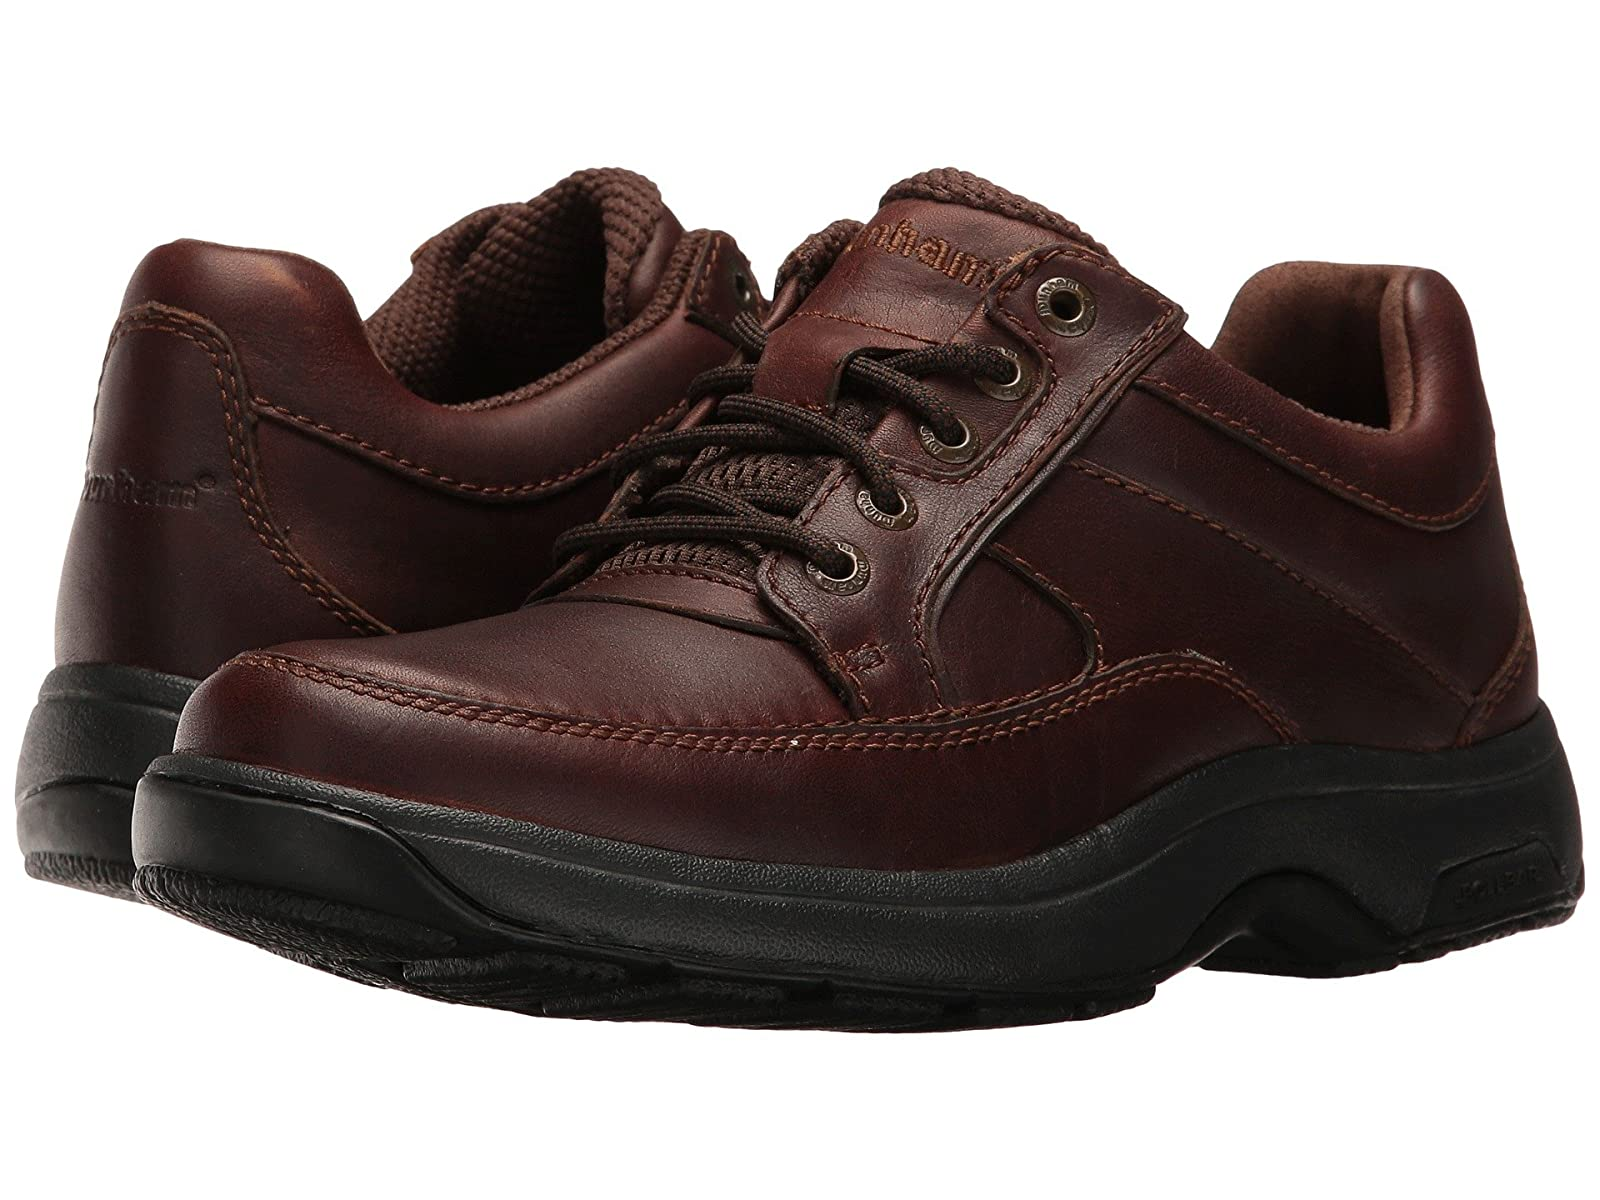 Dunham Midland Oxford WaterproofAtmospheric grades have affordable shoes